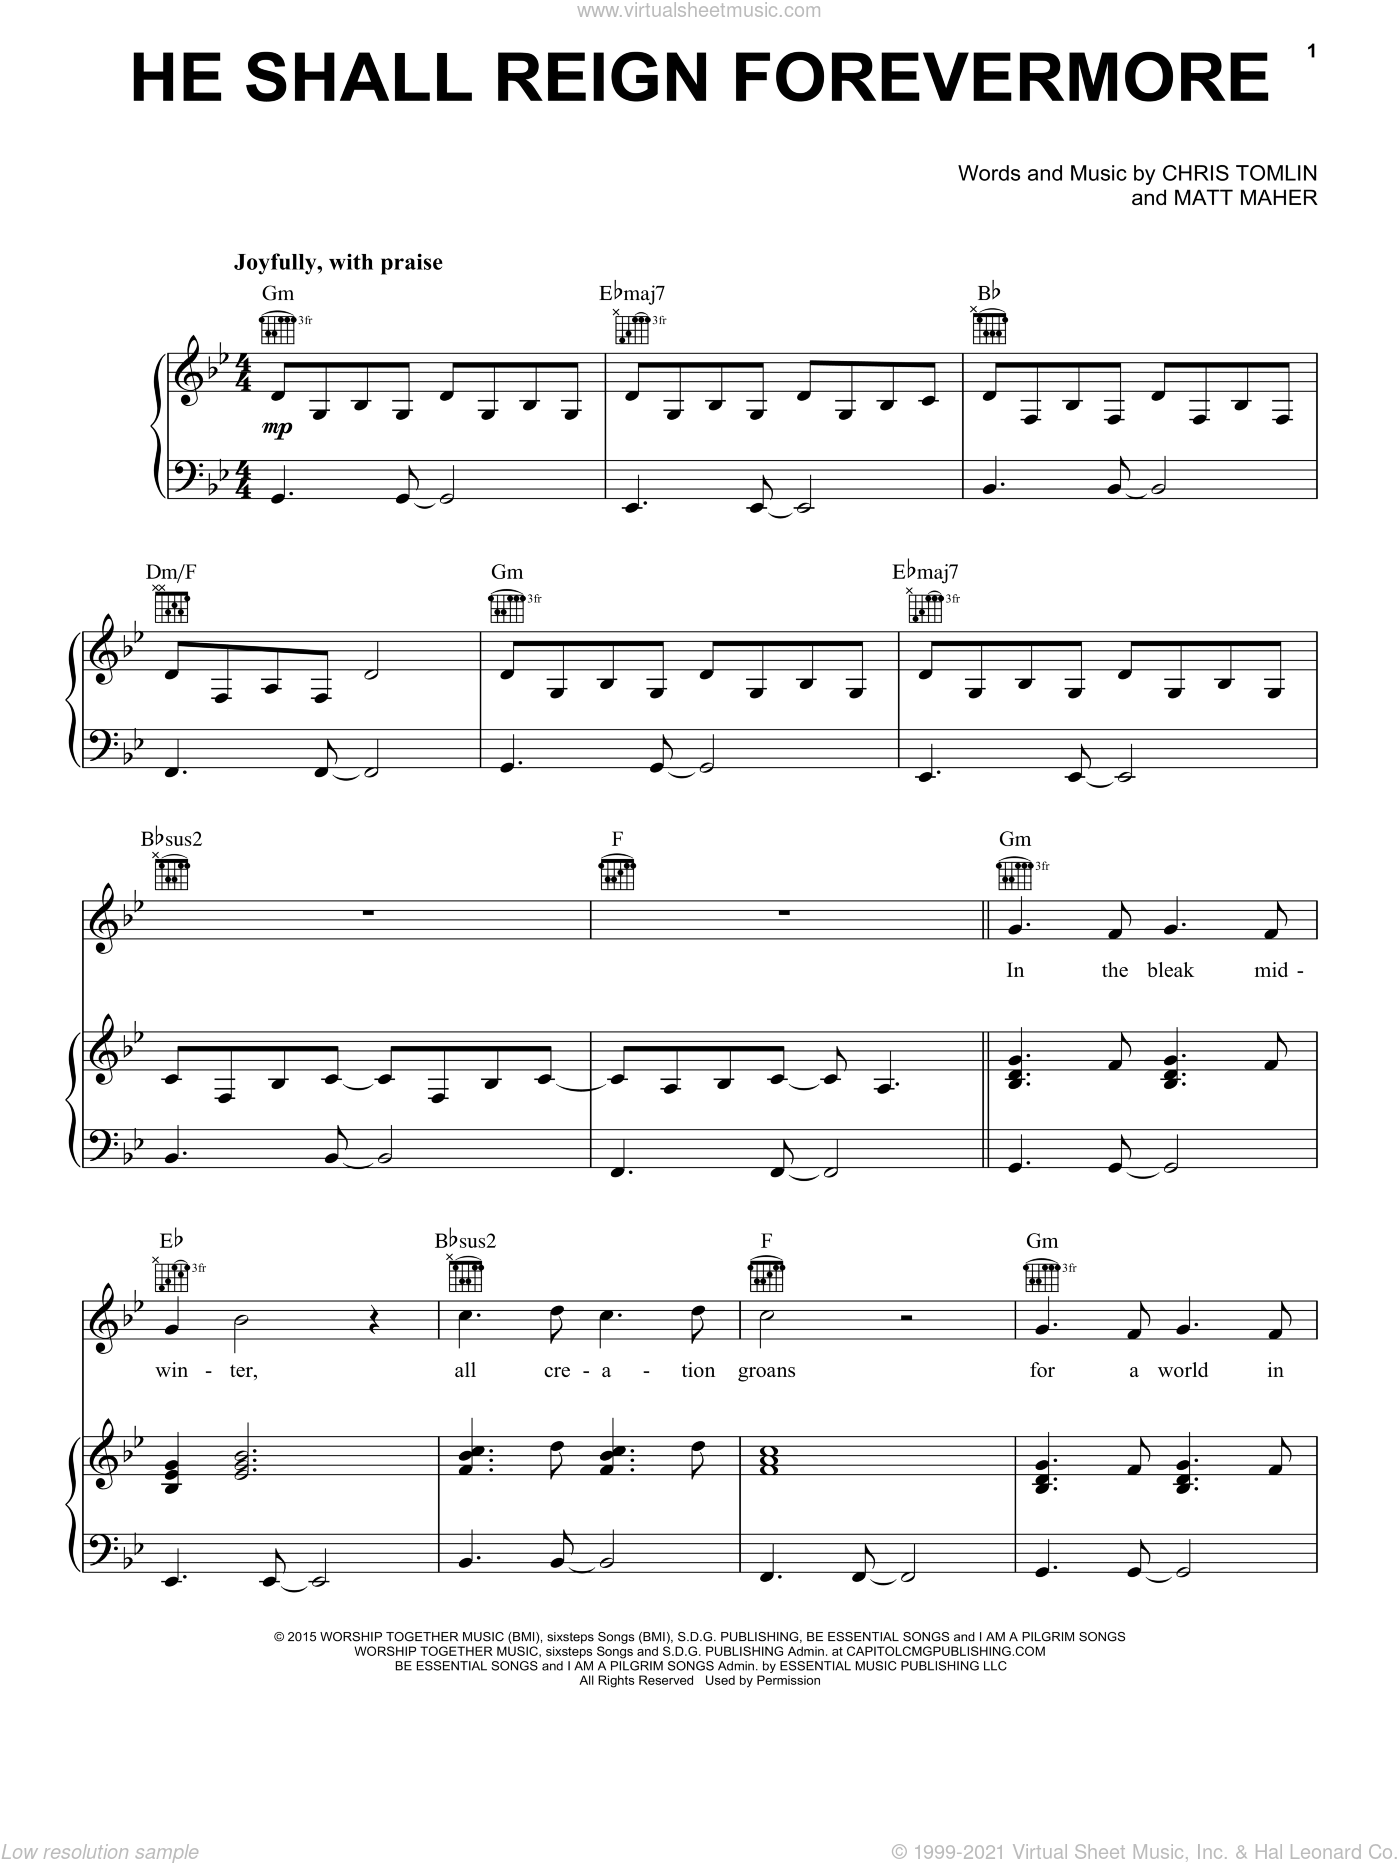 He Shall Reign Forevermore sheet music for voice, piano or guitar by Chris Tomlin and Matt Maher, intermediate skill level